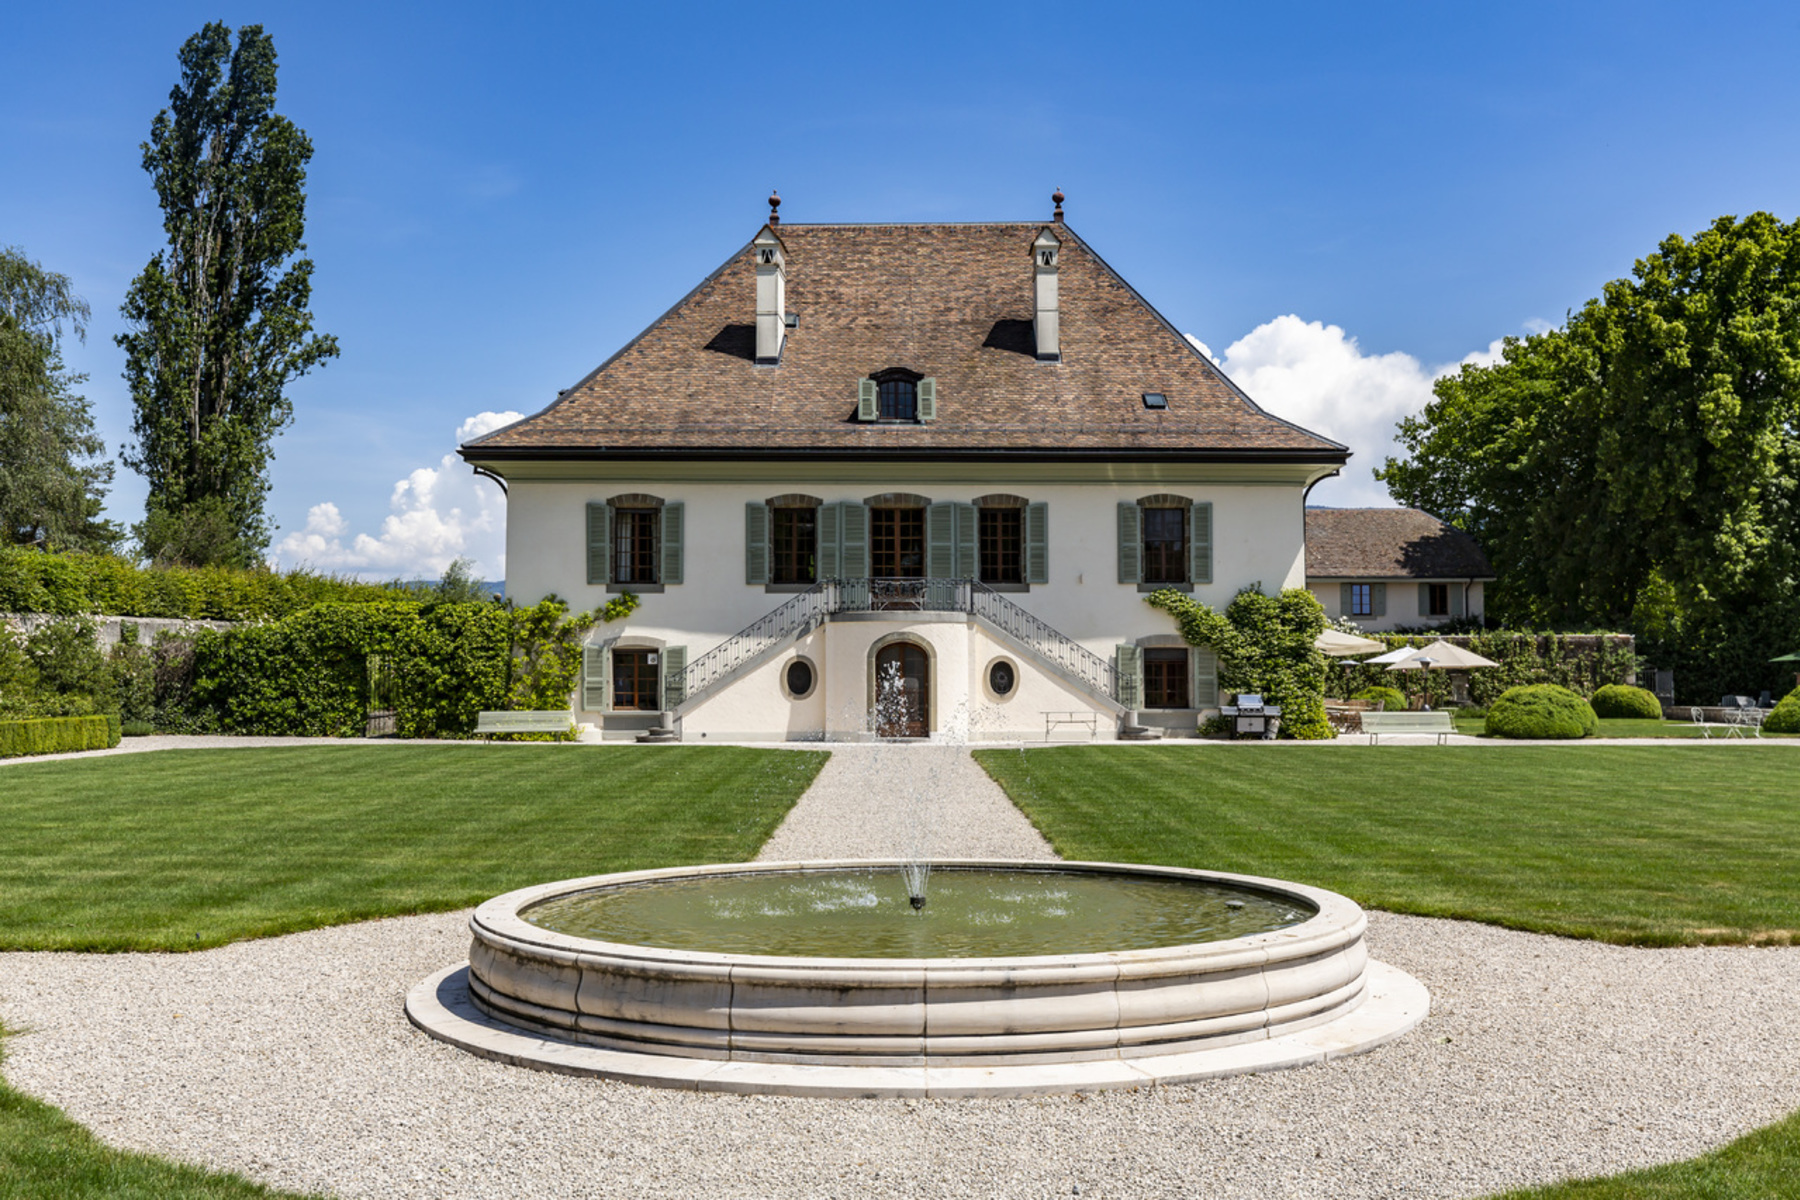 Property for Sale at Royal Estate Merlinge Castle Gy Other Geneve, Geneva 1252 Switzerland